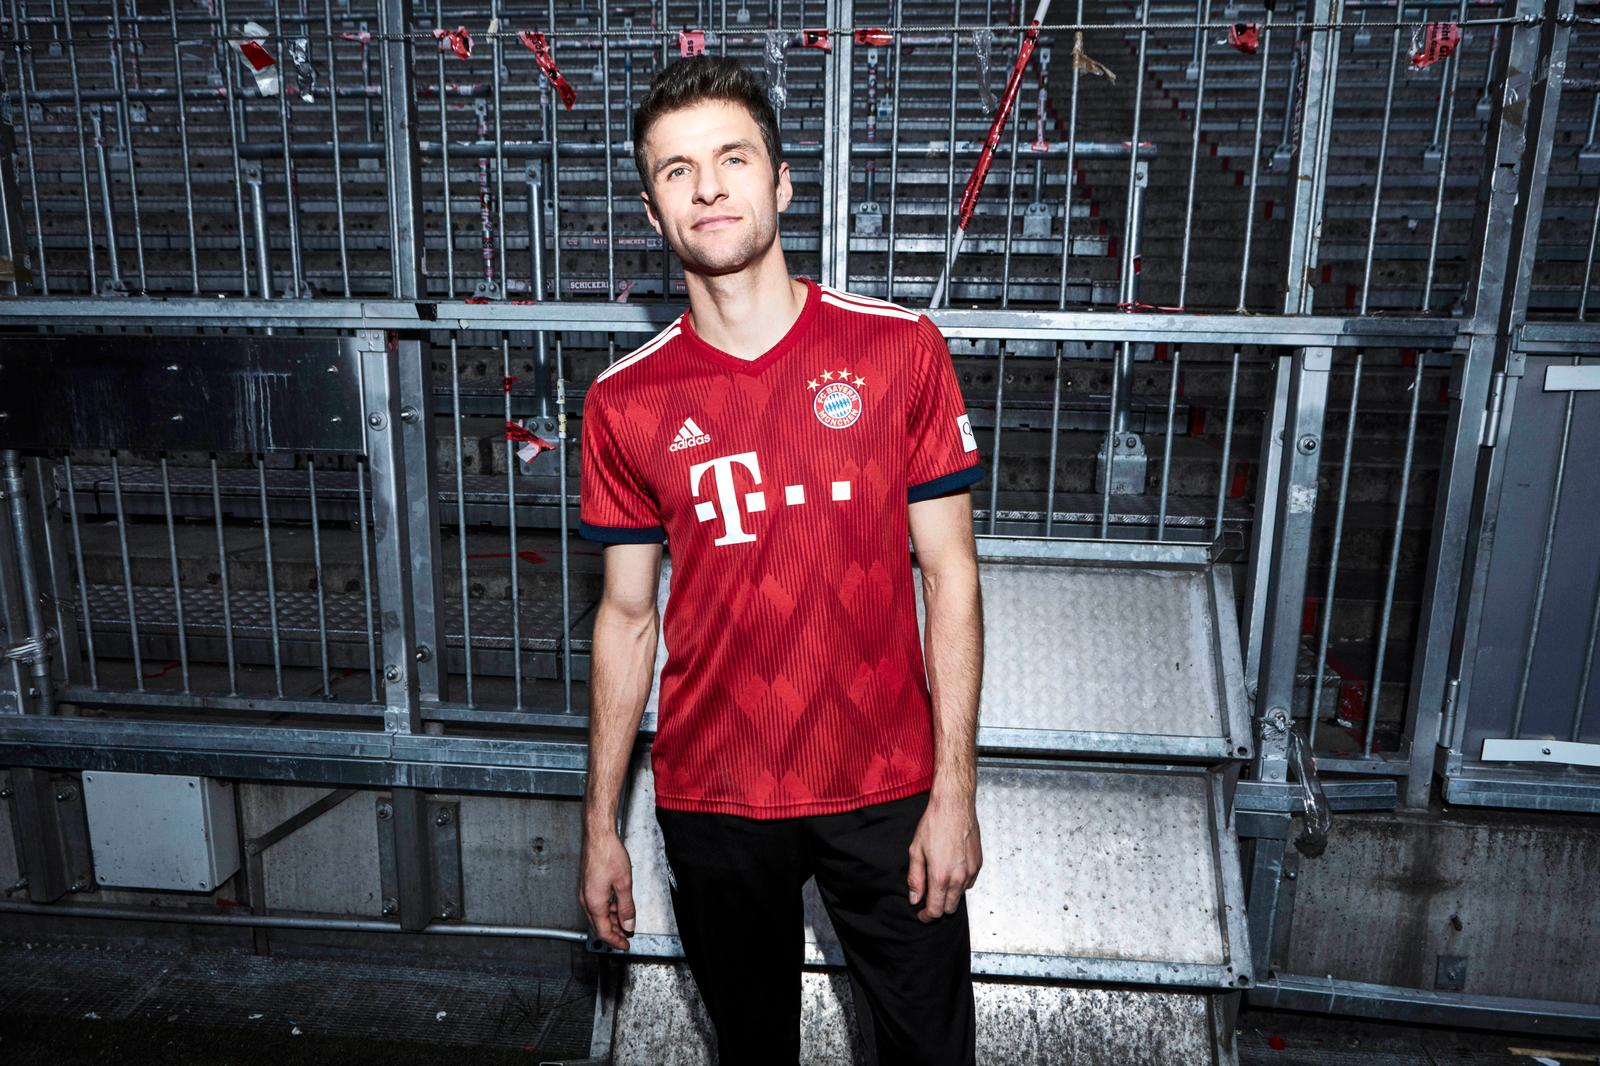 bayern-munich-18-19-home-kit-2.jpg